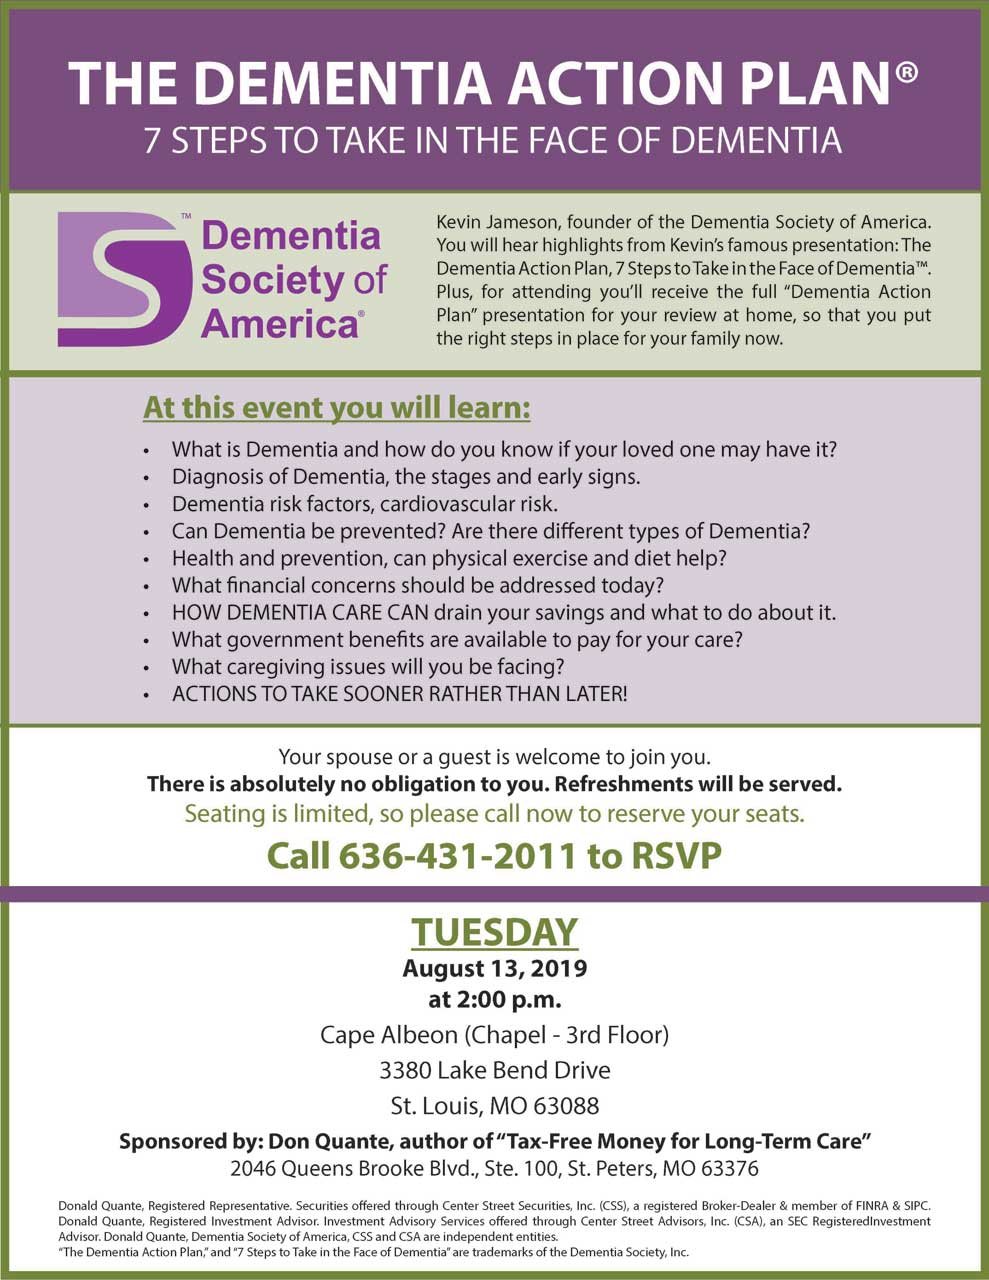 Cape Albeon hosts Dementia Action Plan